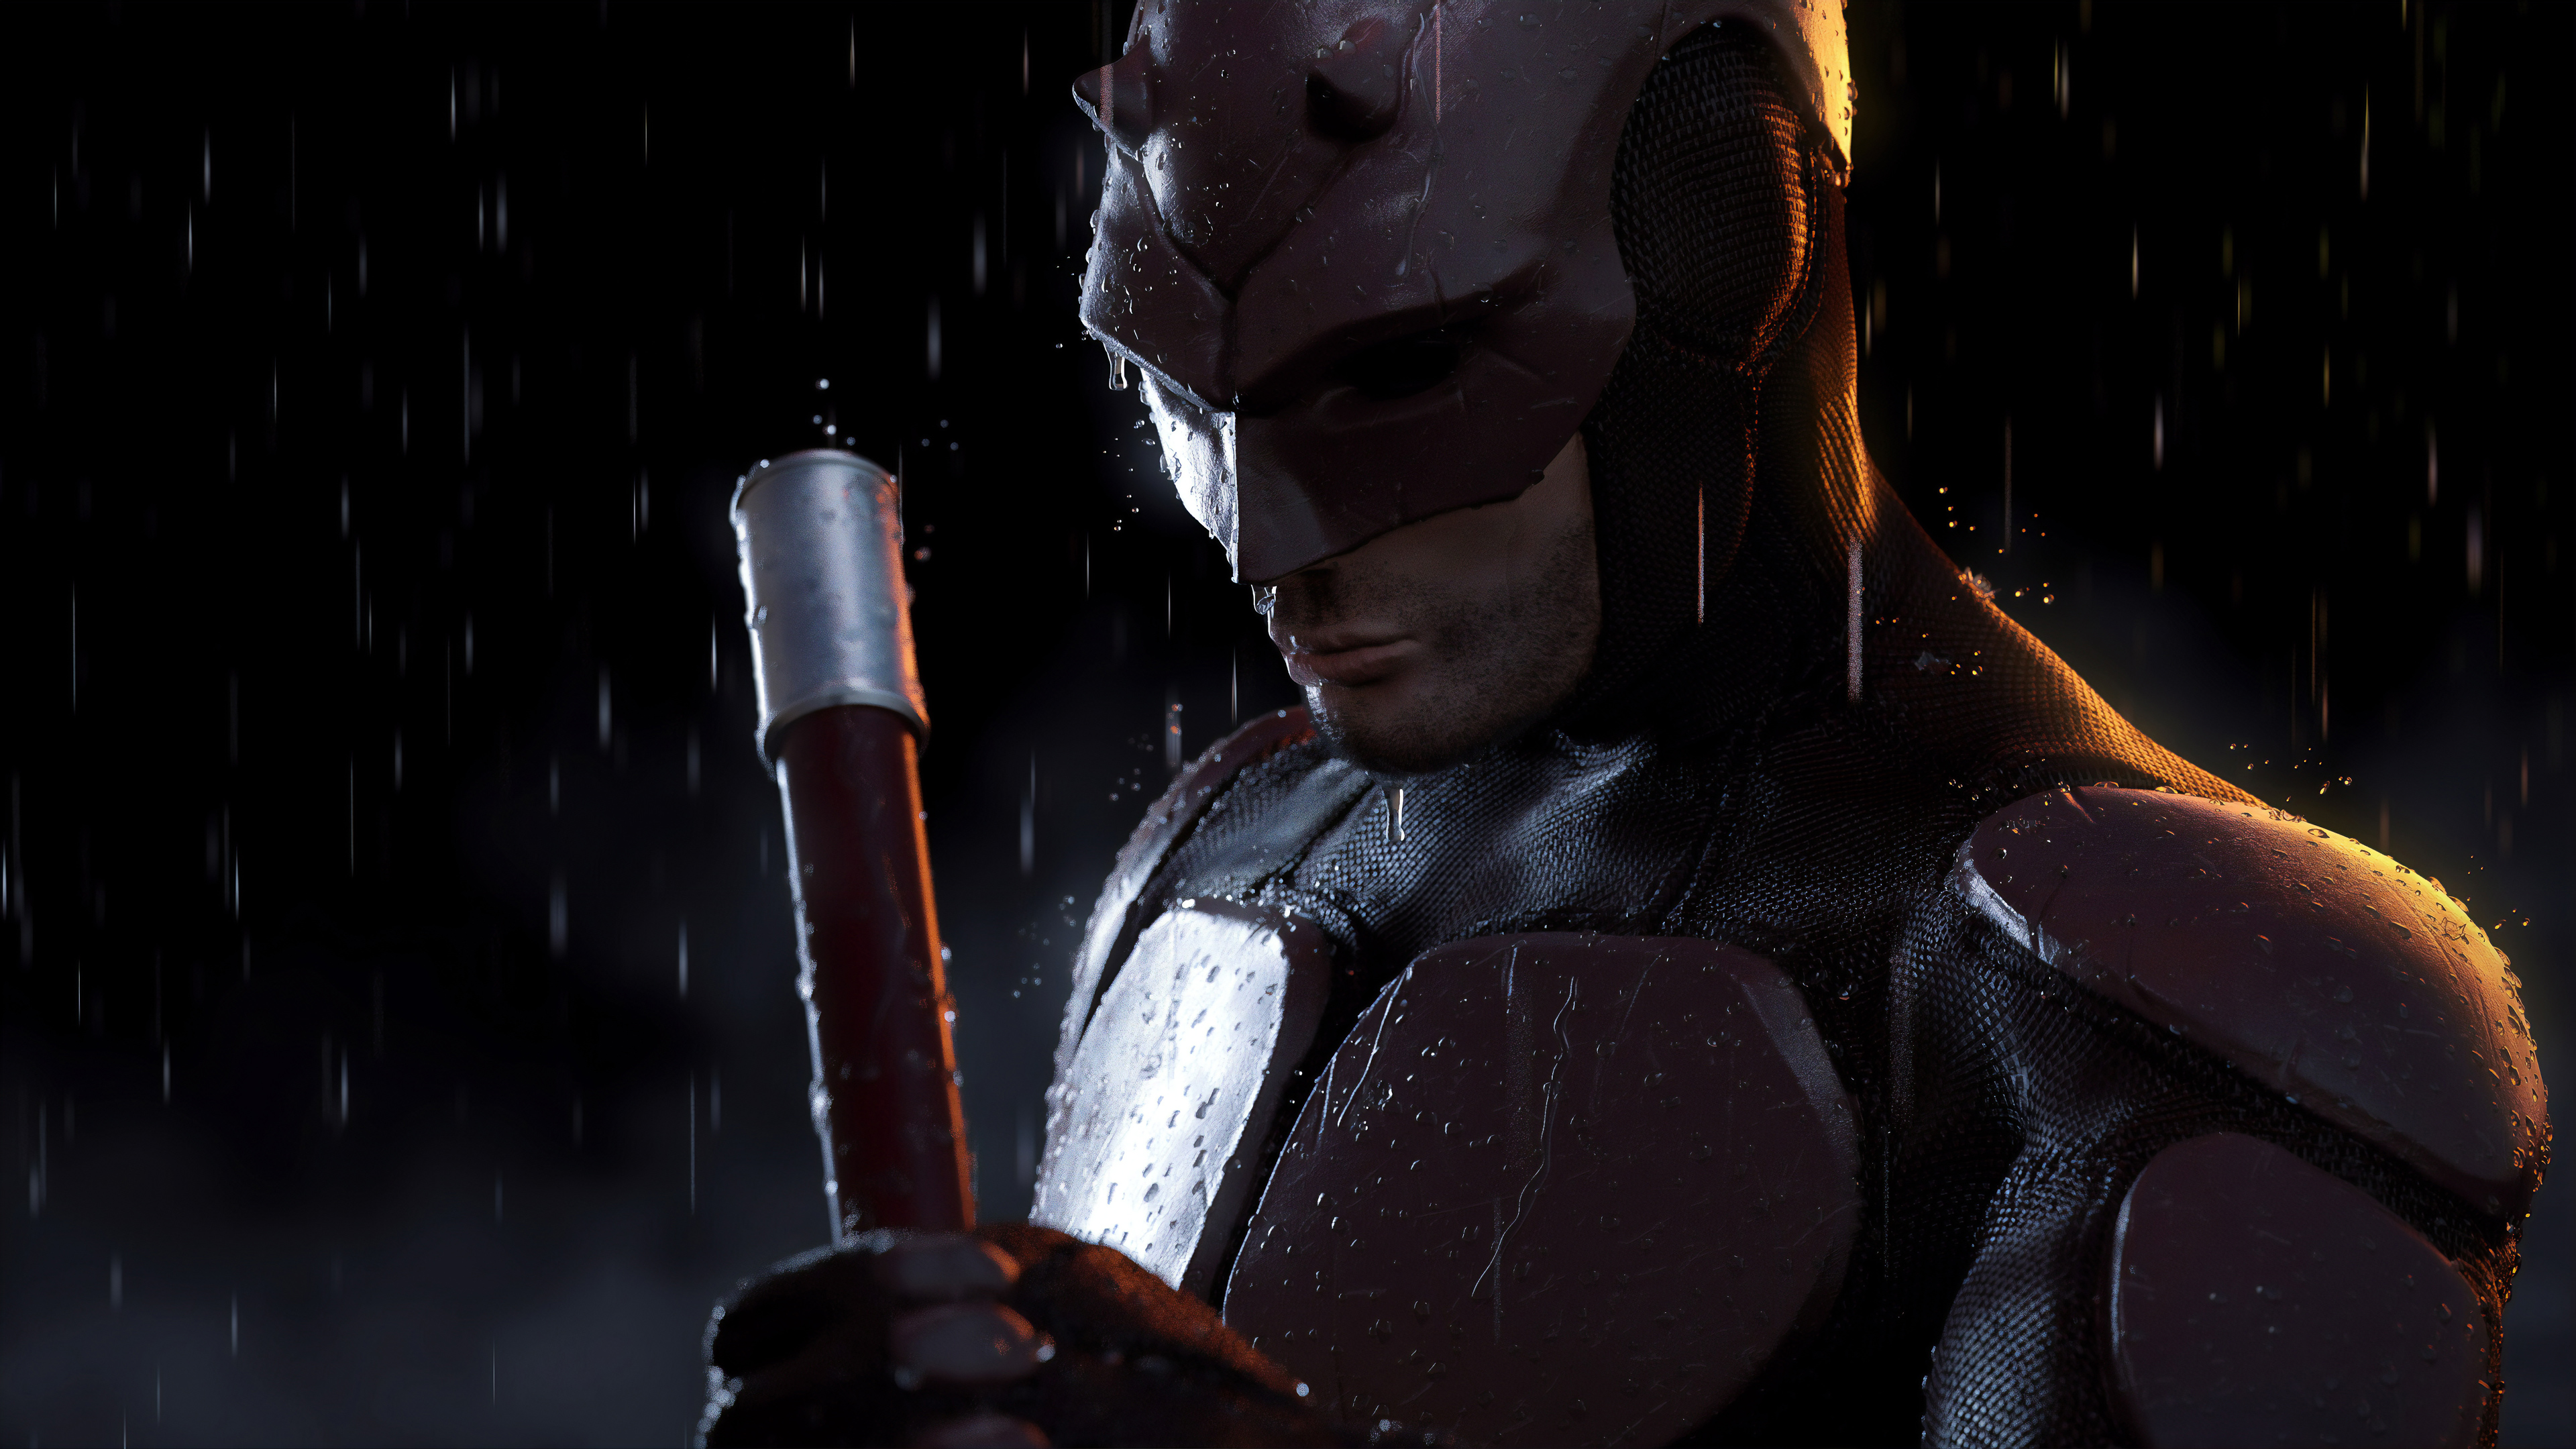 daredevil 4k new 1559764149 - Daredevil 4k New - superheroes wallpapers, hd-wallpapers, daredevil wallpapers, behance wallpapers, artwork wallpapers, 4k-wallpapers